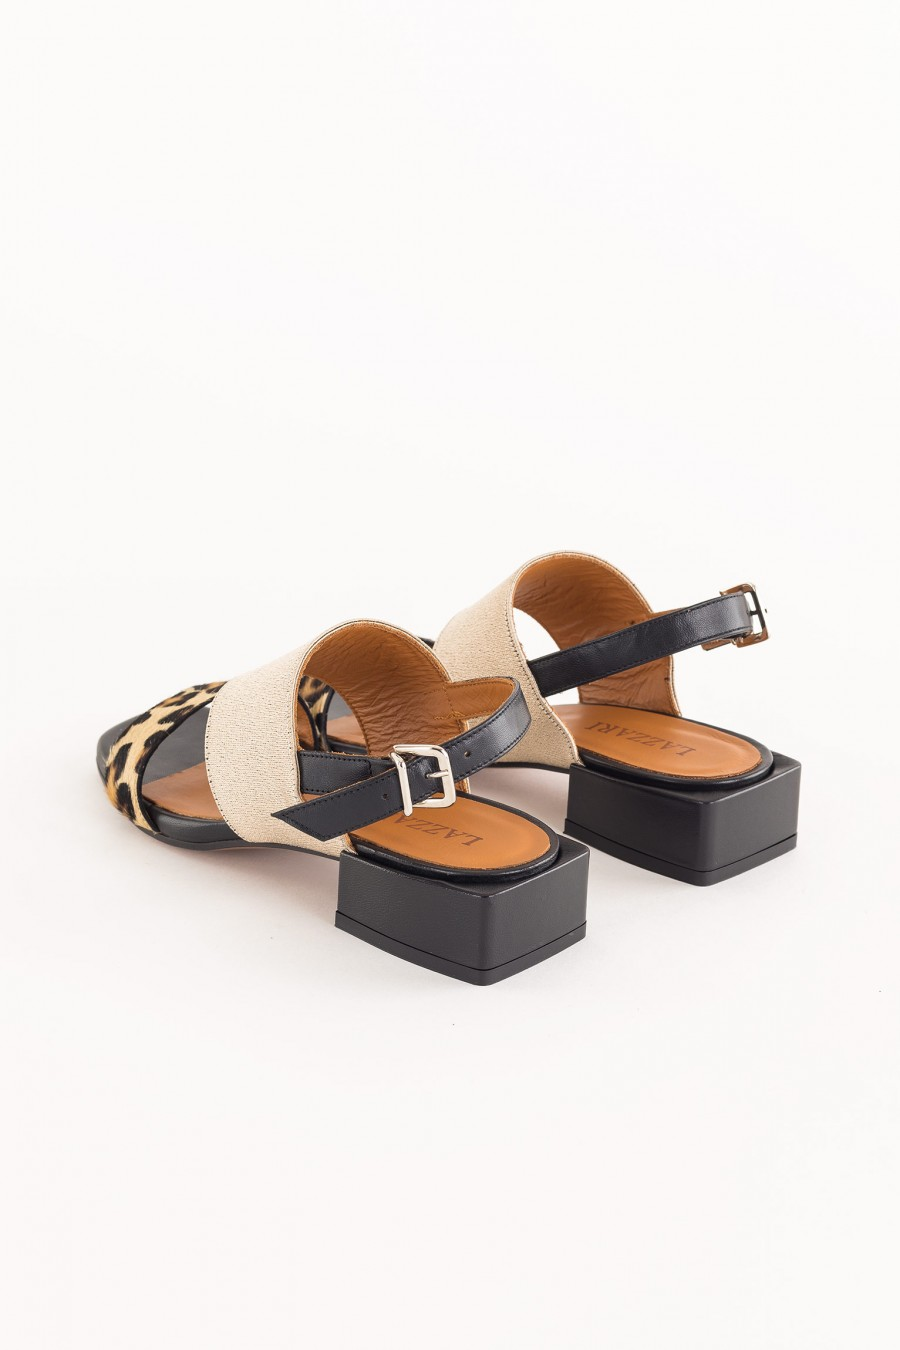 black bimaterial sandals with square heel